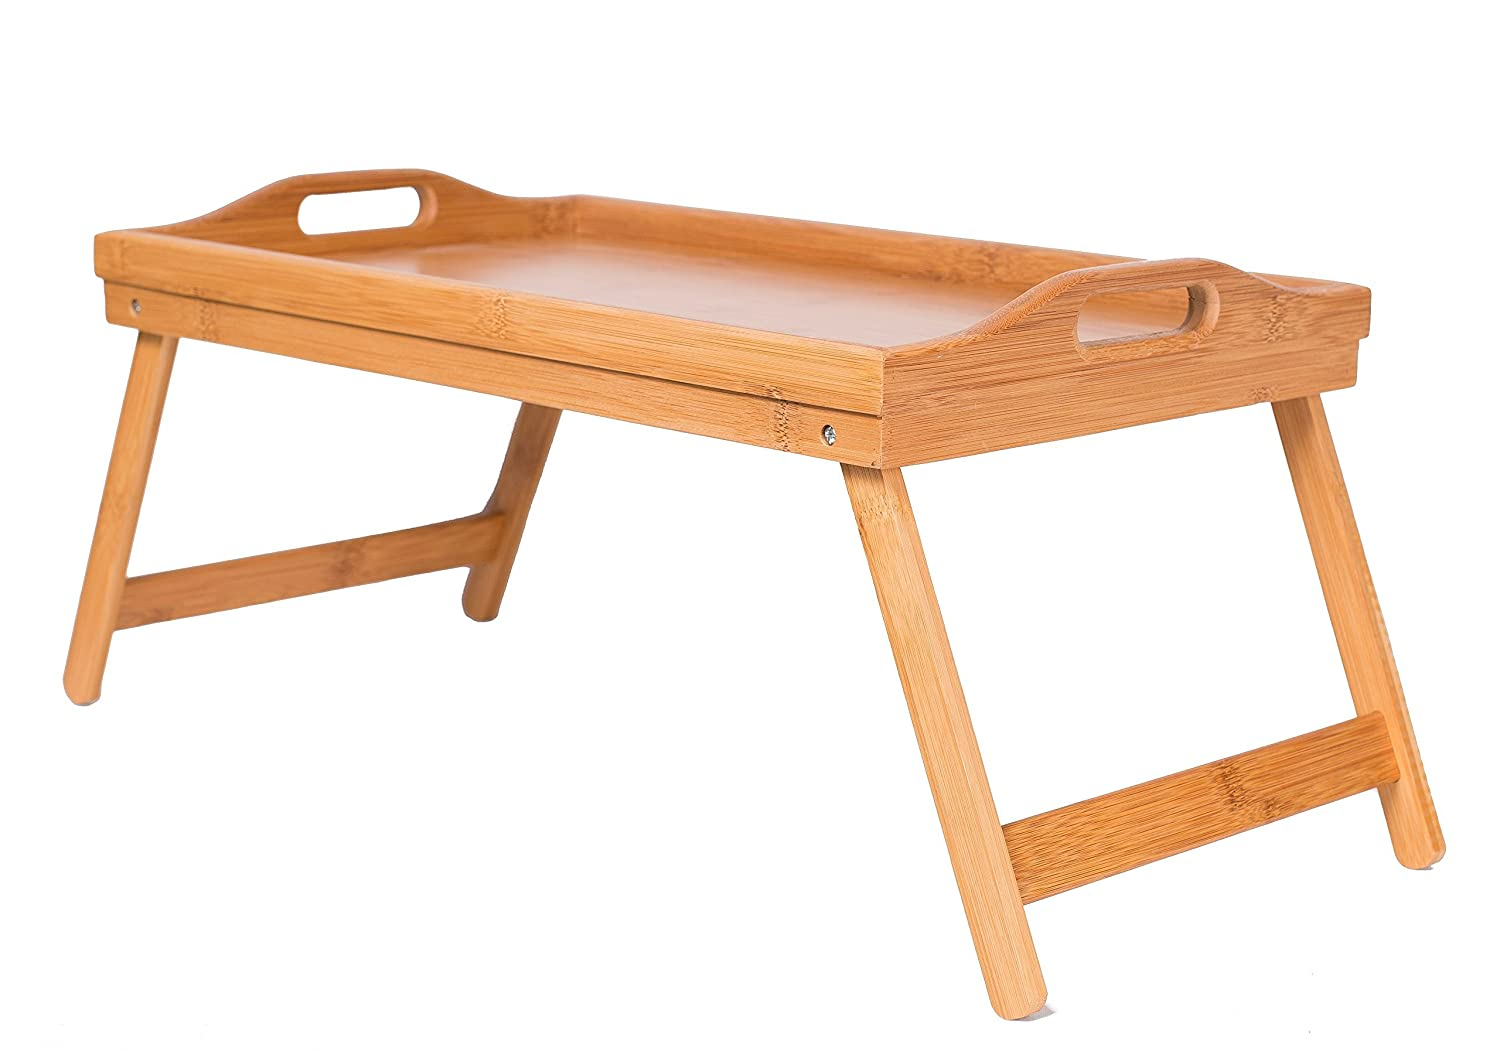 BirdRock Home Bamboo Lap Desk Bed Tray | Handles | Foldable Breakfast Serving Tray | Pull Down Legs | Laptop Stand | Natural 8028